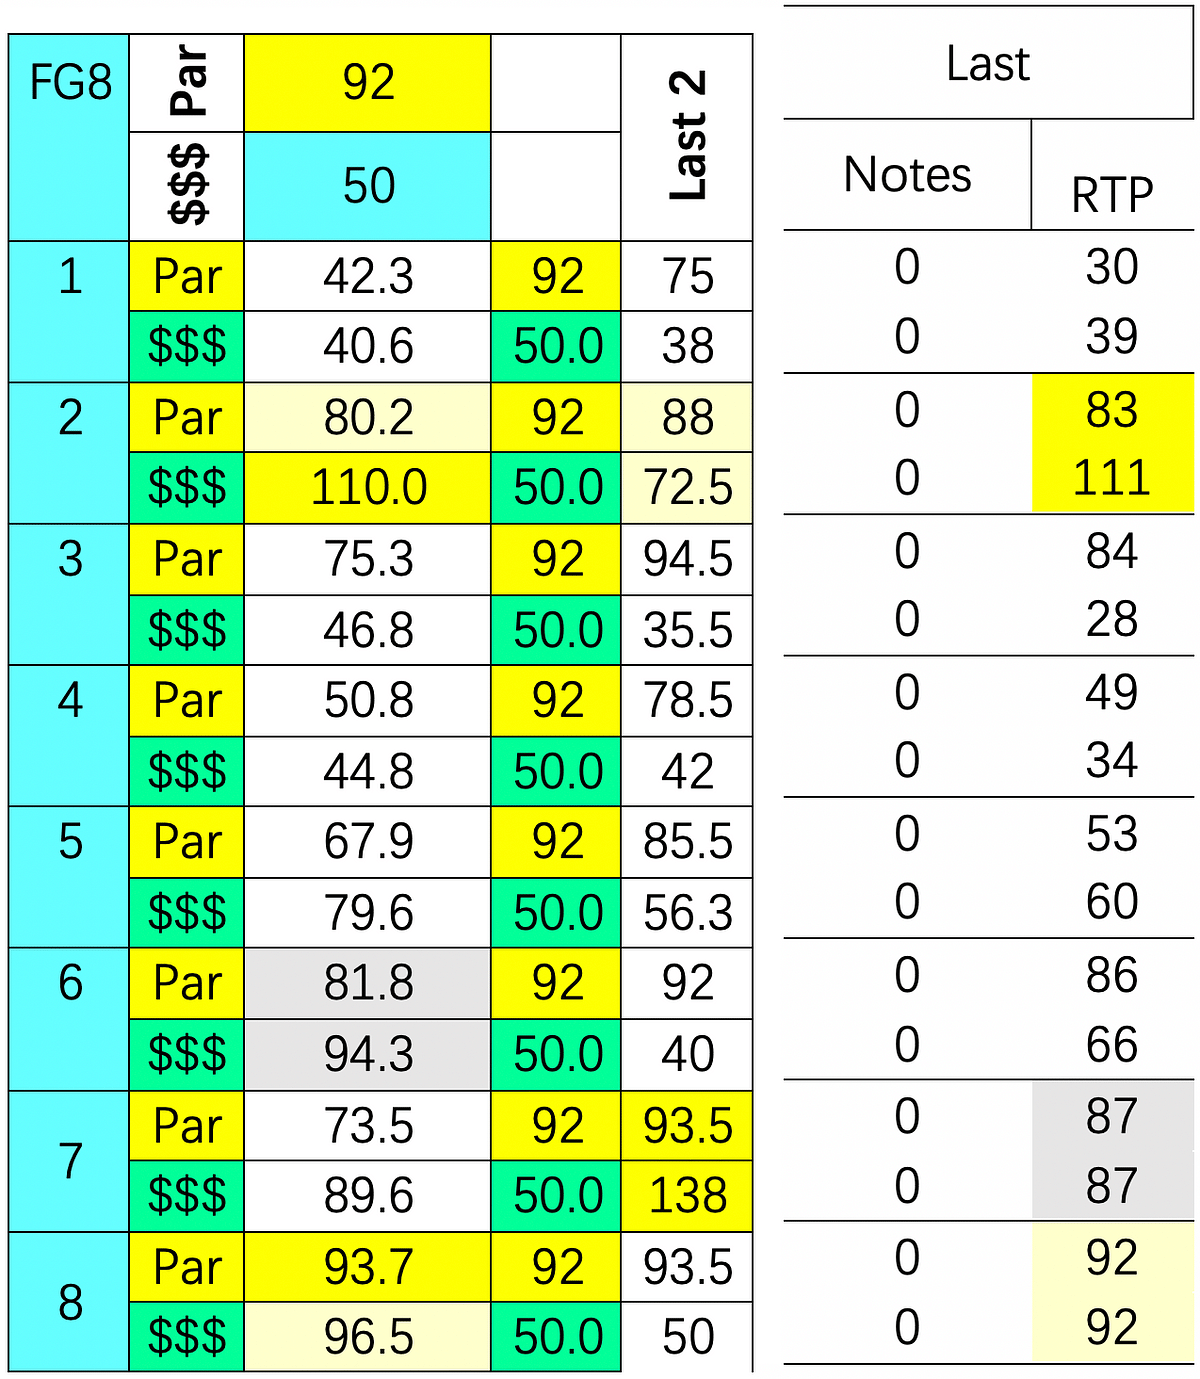 SmartCap analysis of the 8th race at the Fair Grounds